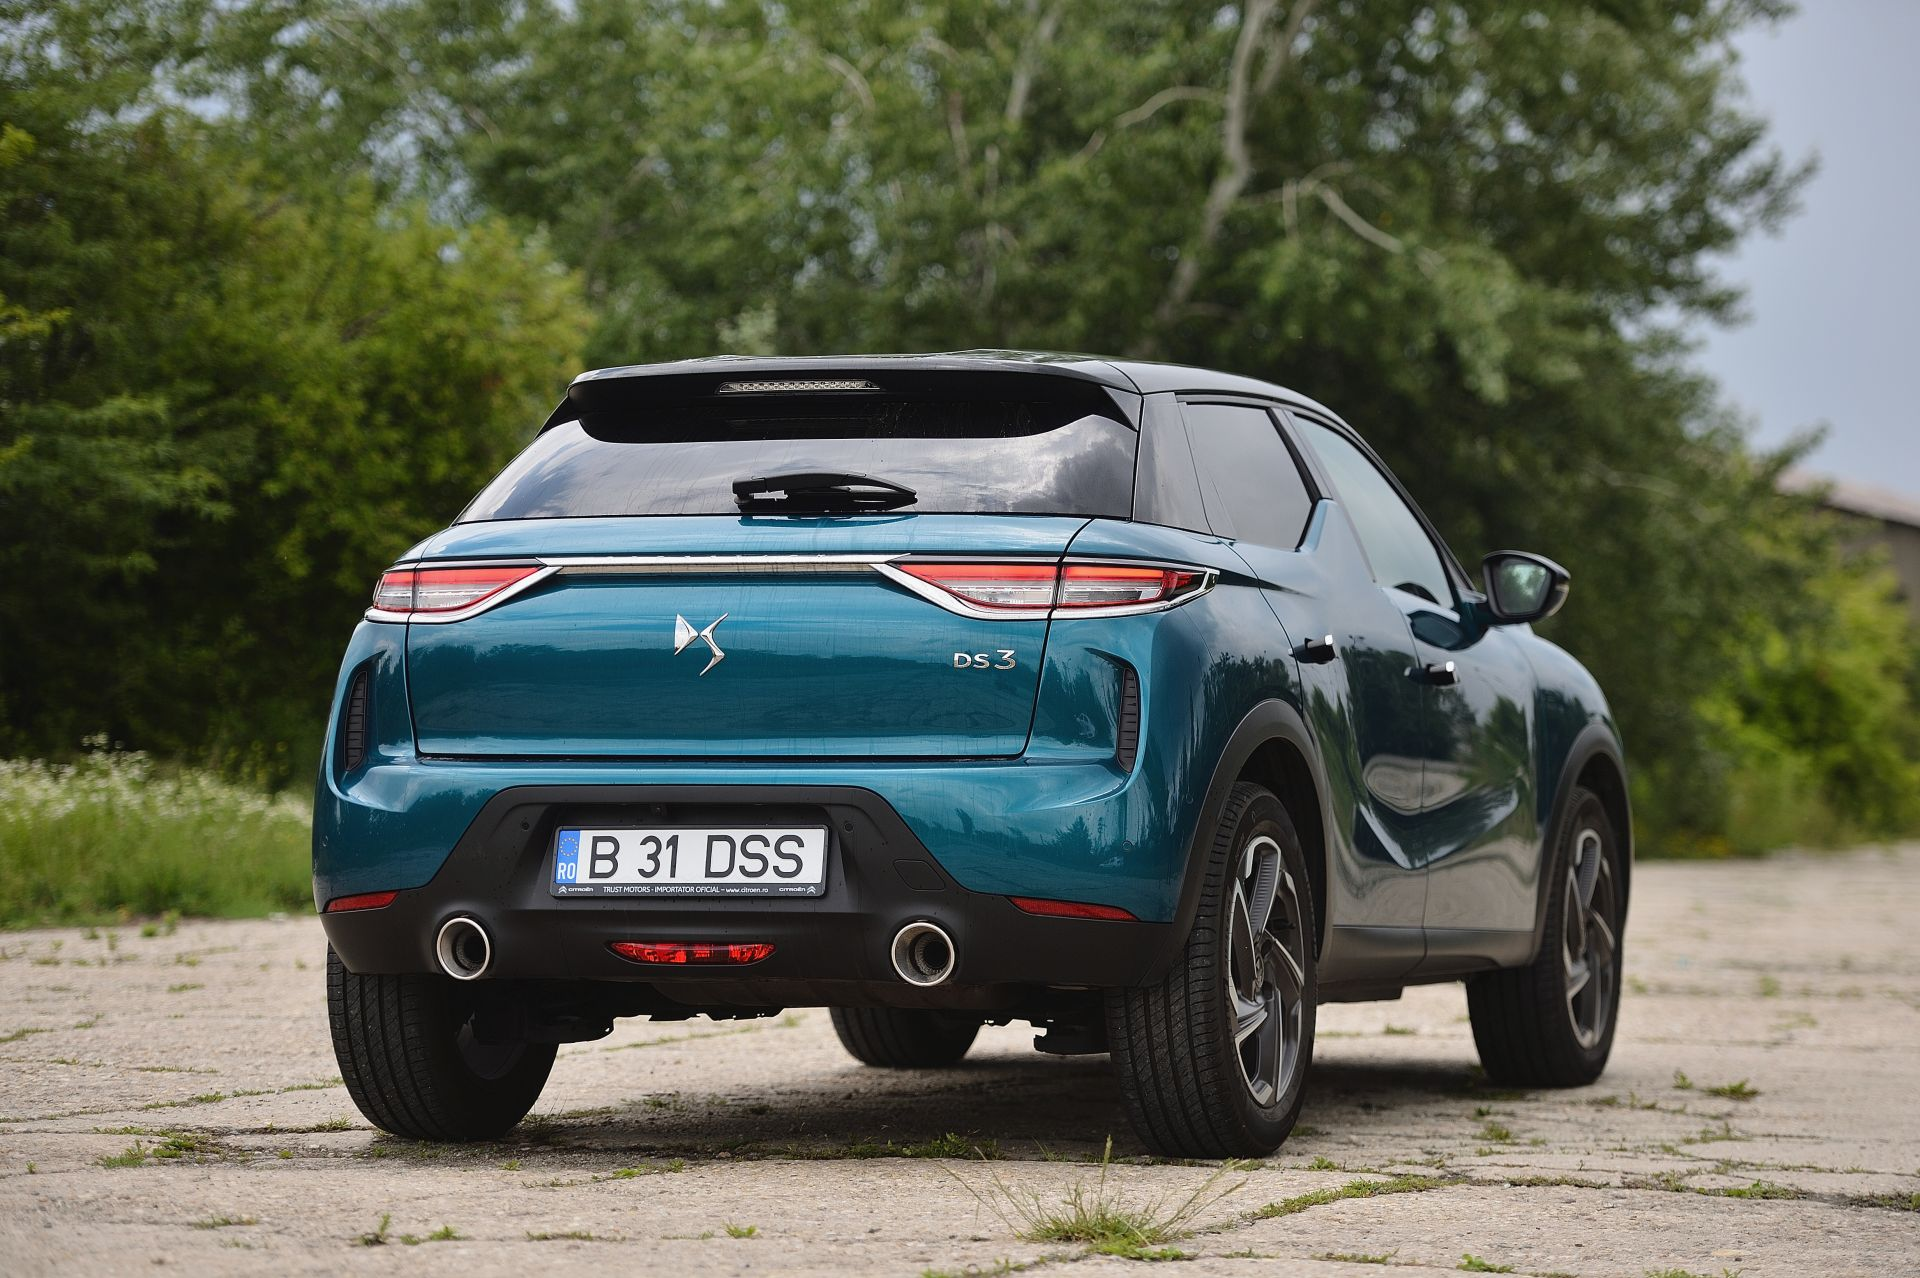 DS3 Crossback 1.2 Turbo